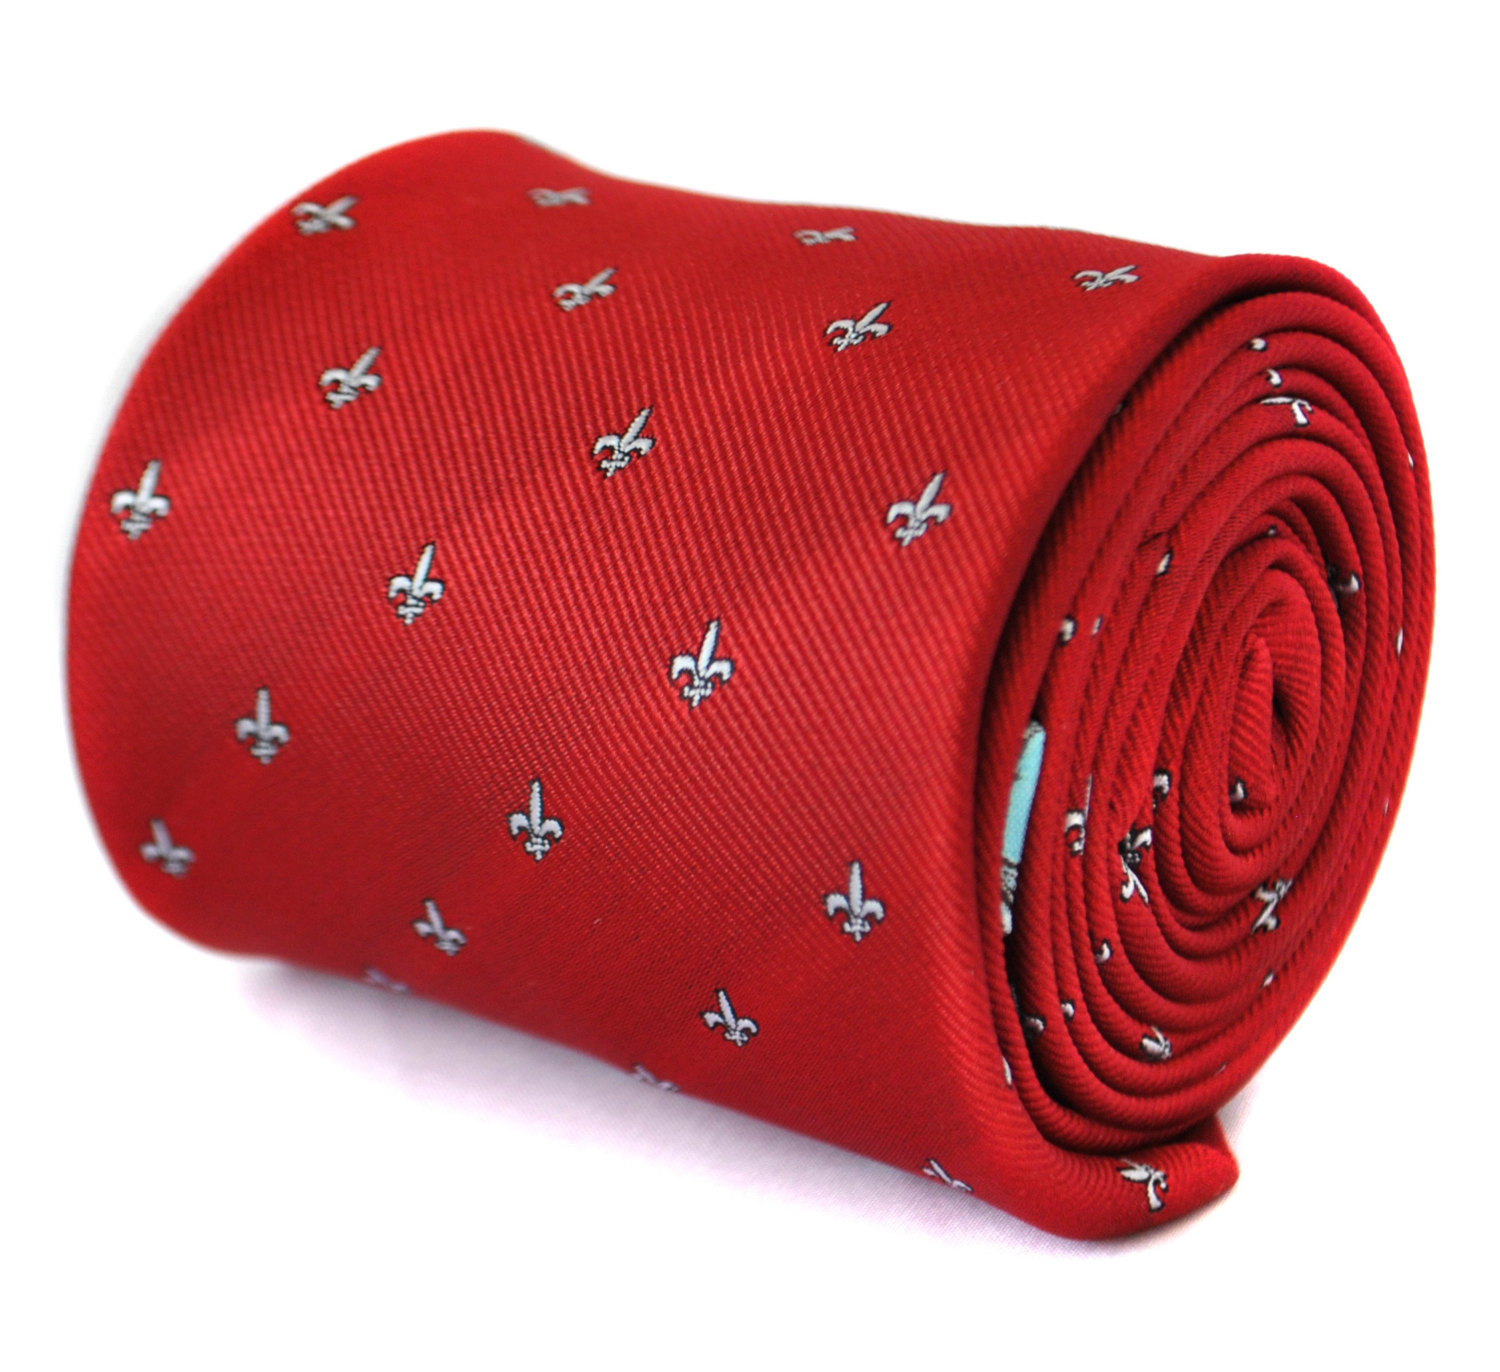 red tie with fleur de lis design with signature floral design to rear by Frederi